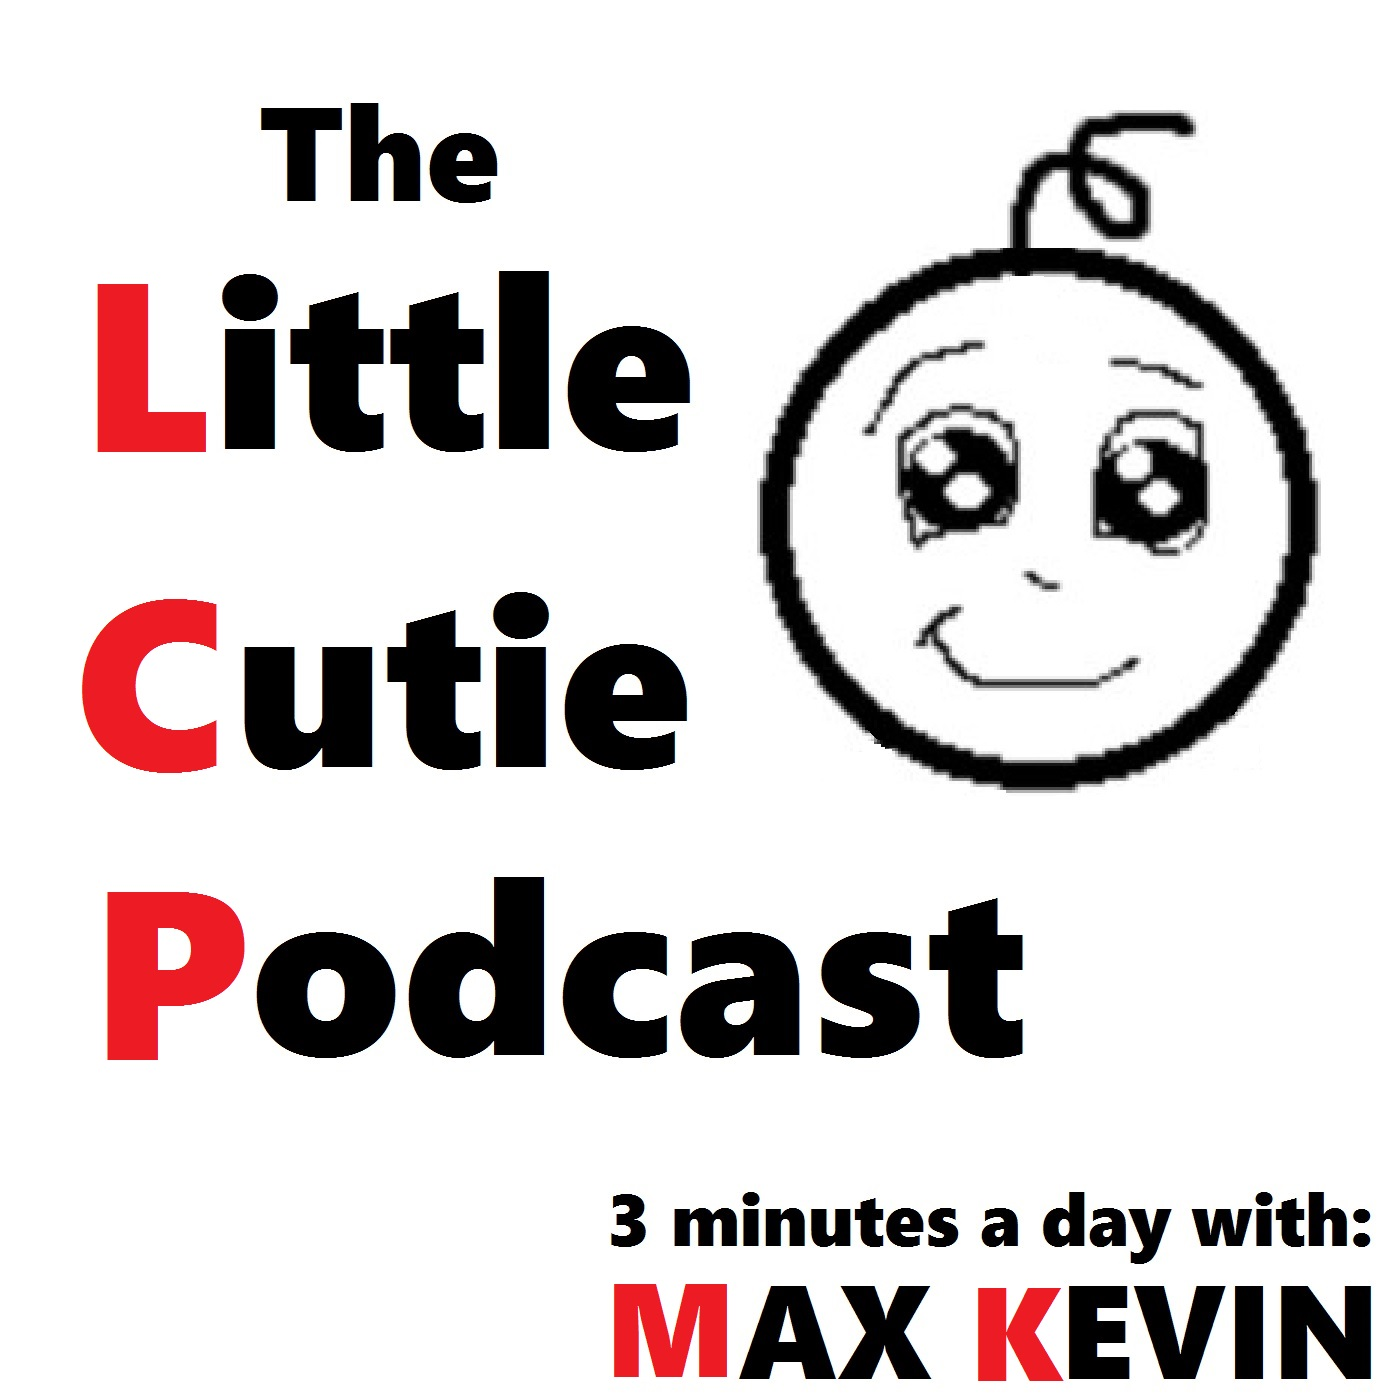 The Little Cutie Podcast